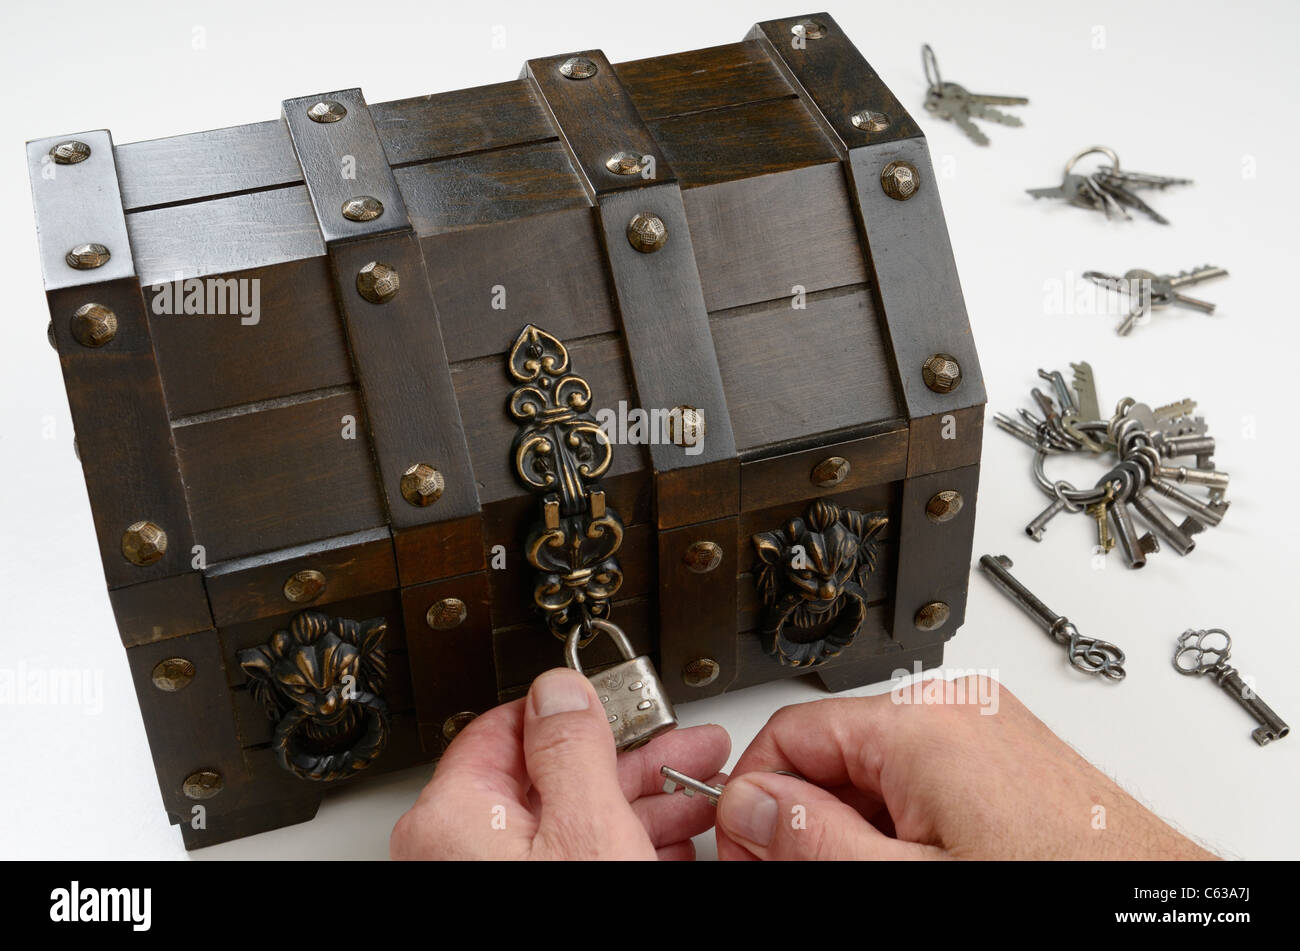 Man's hands searching for the key to fit the lock on a treasure chest - Stock Image